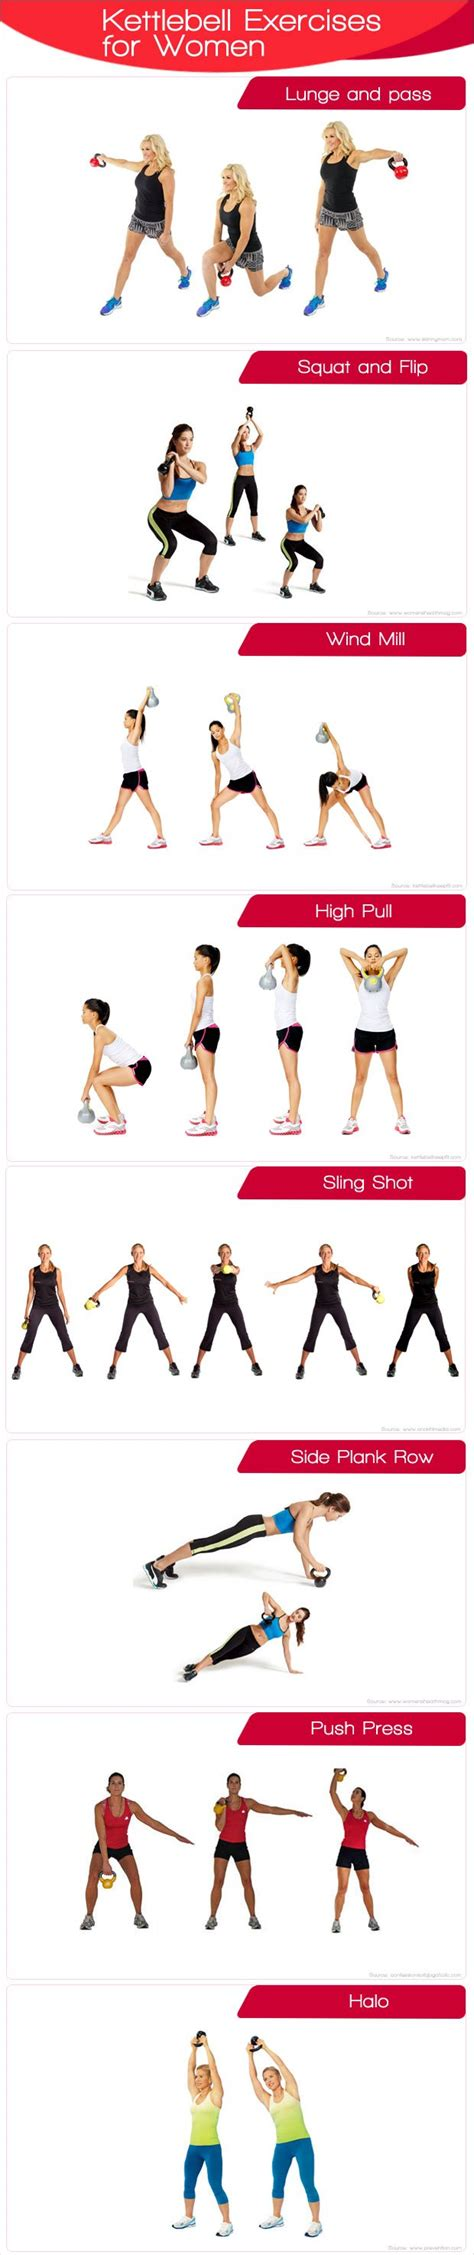 kettlebell exercises workouts side abdomen right benefits doing keep